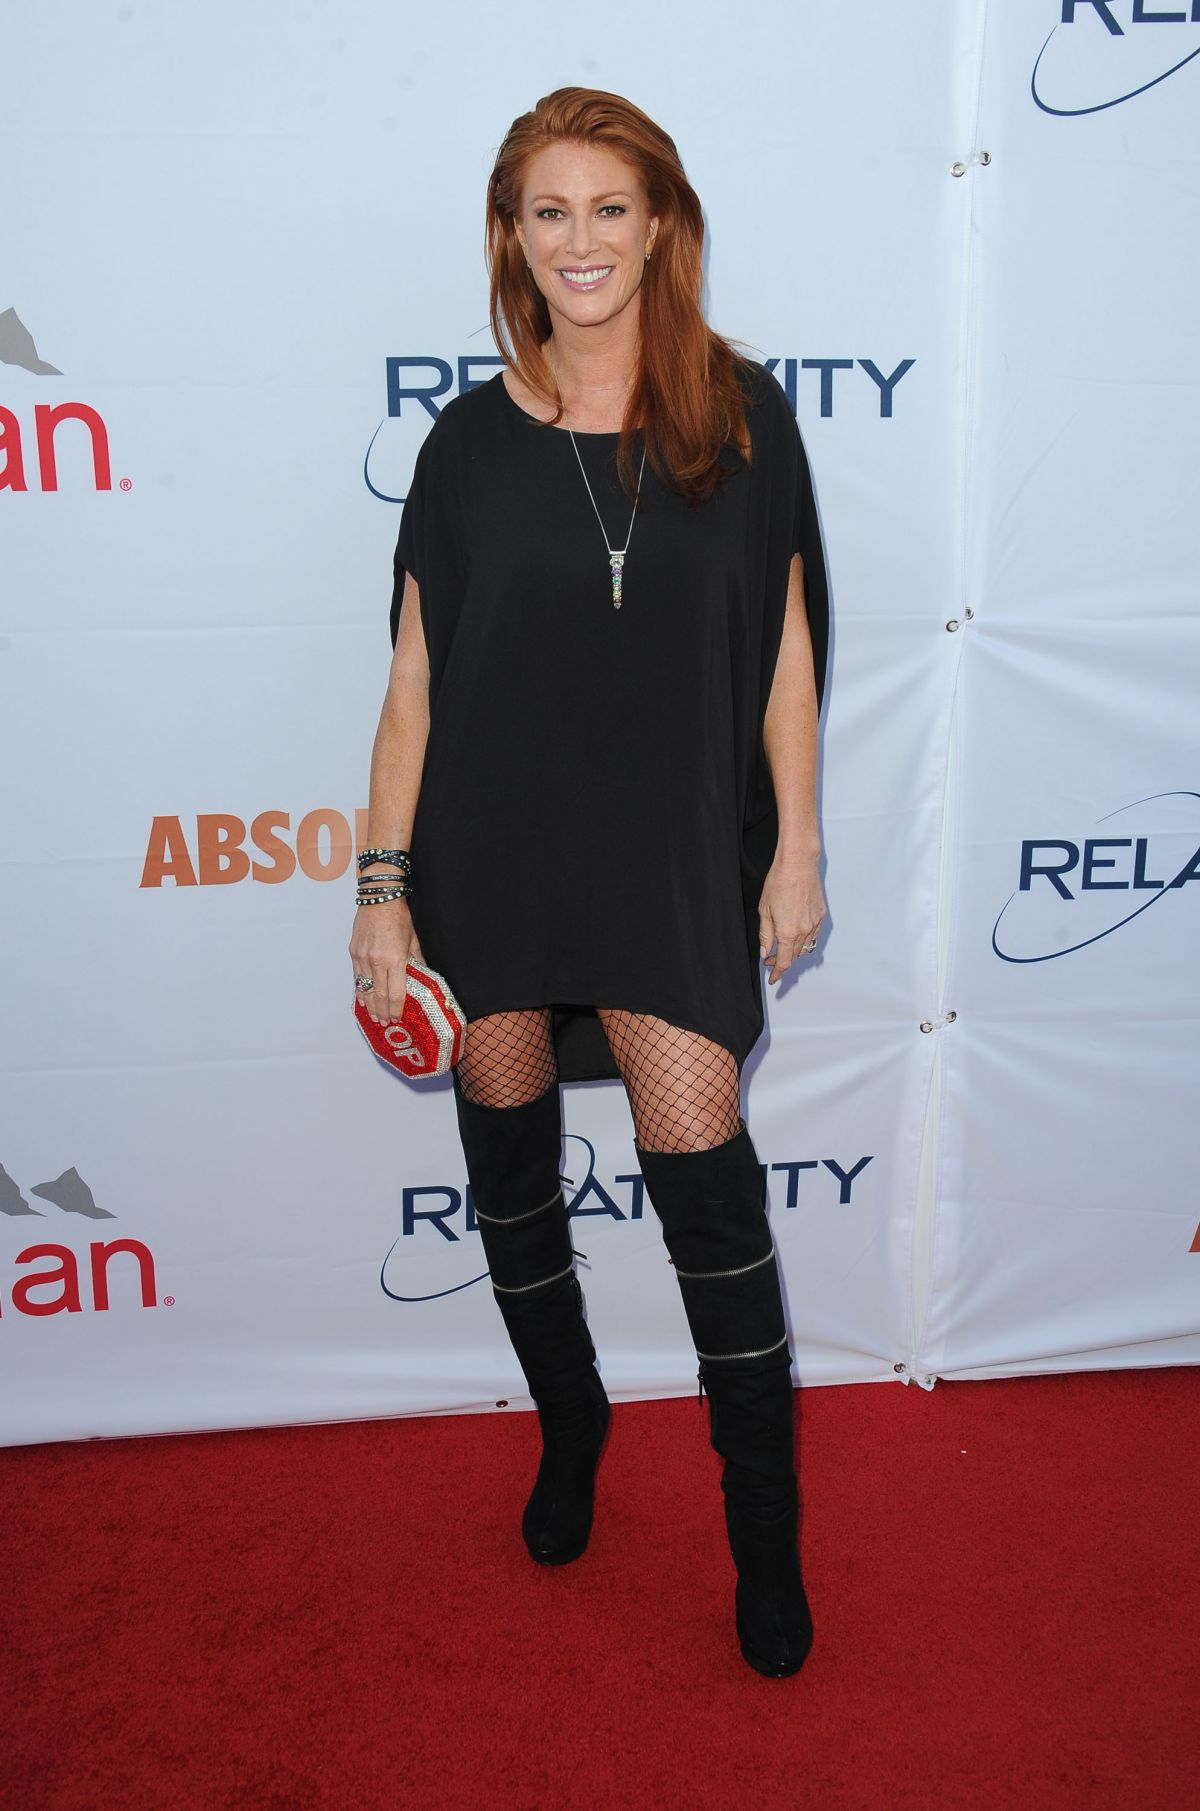 ANGIE EVERHART at Pathway to the Cure Fundraiser Benefit in Santa Monica